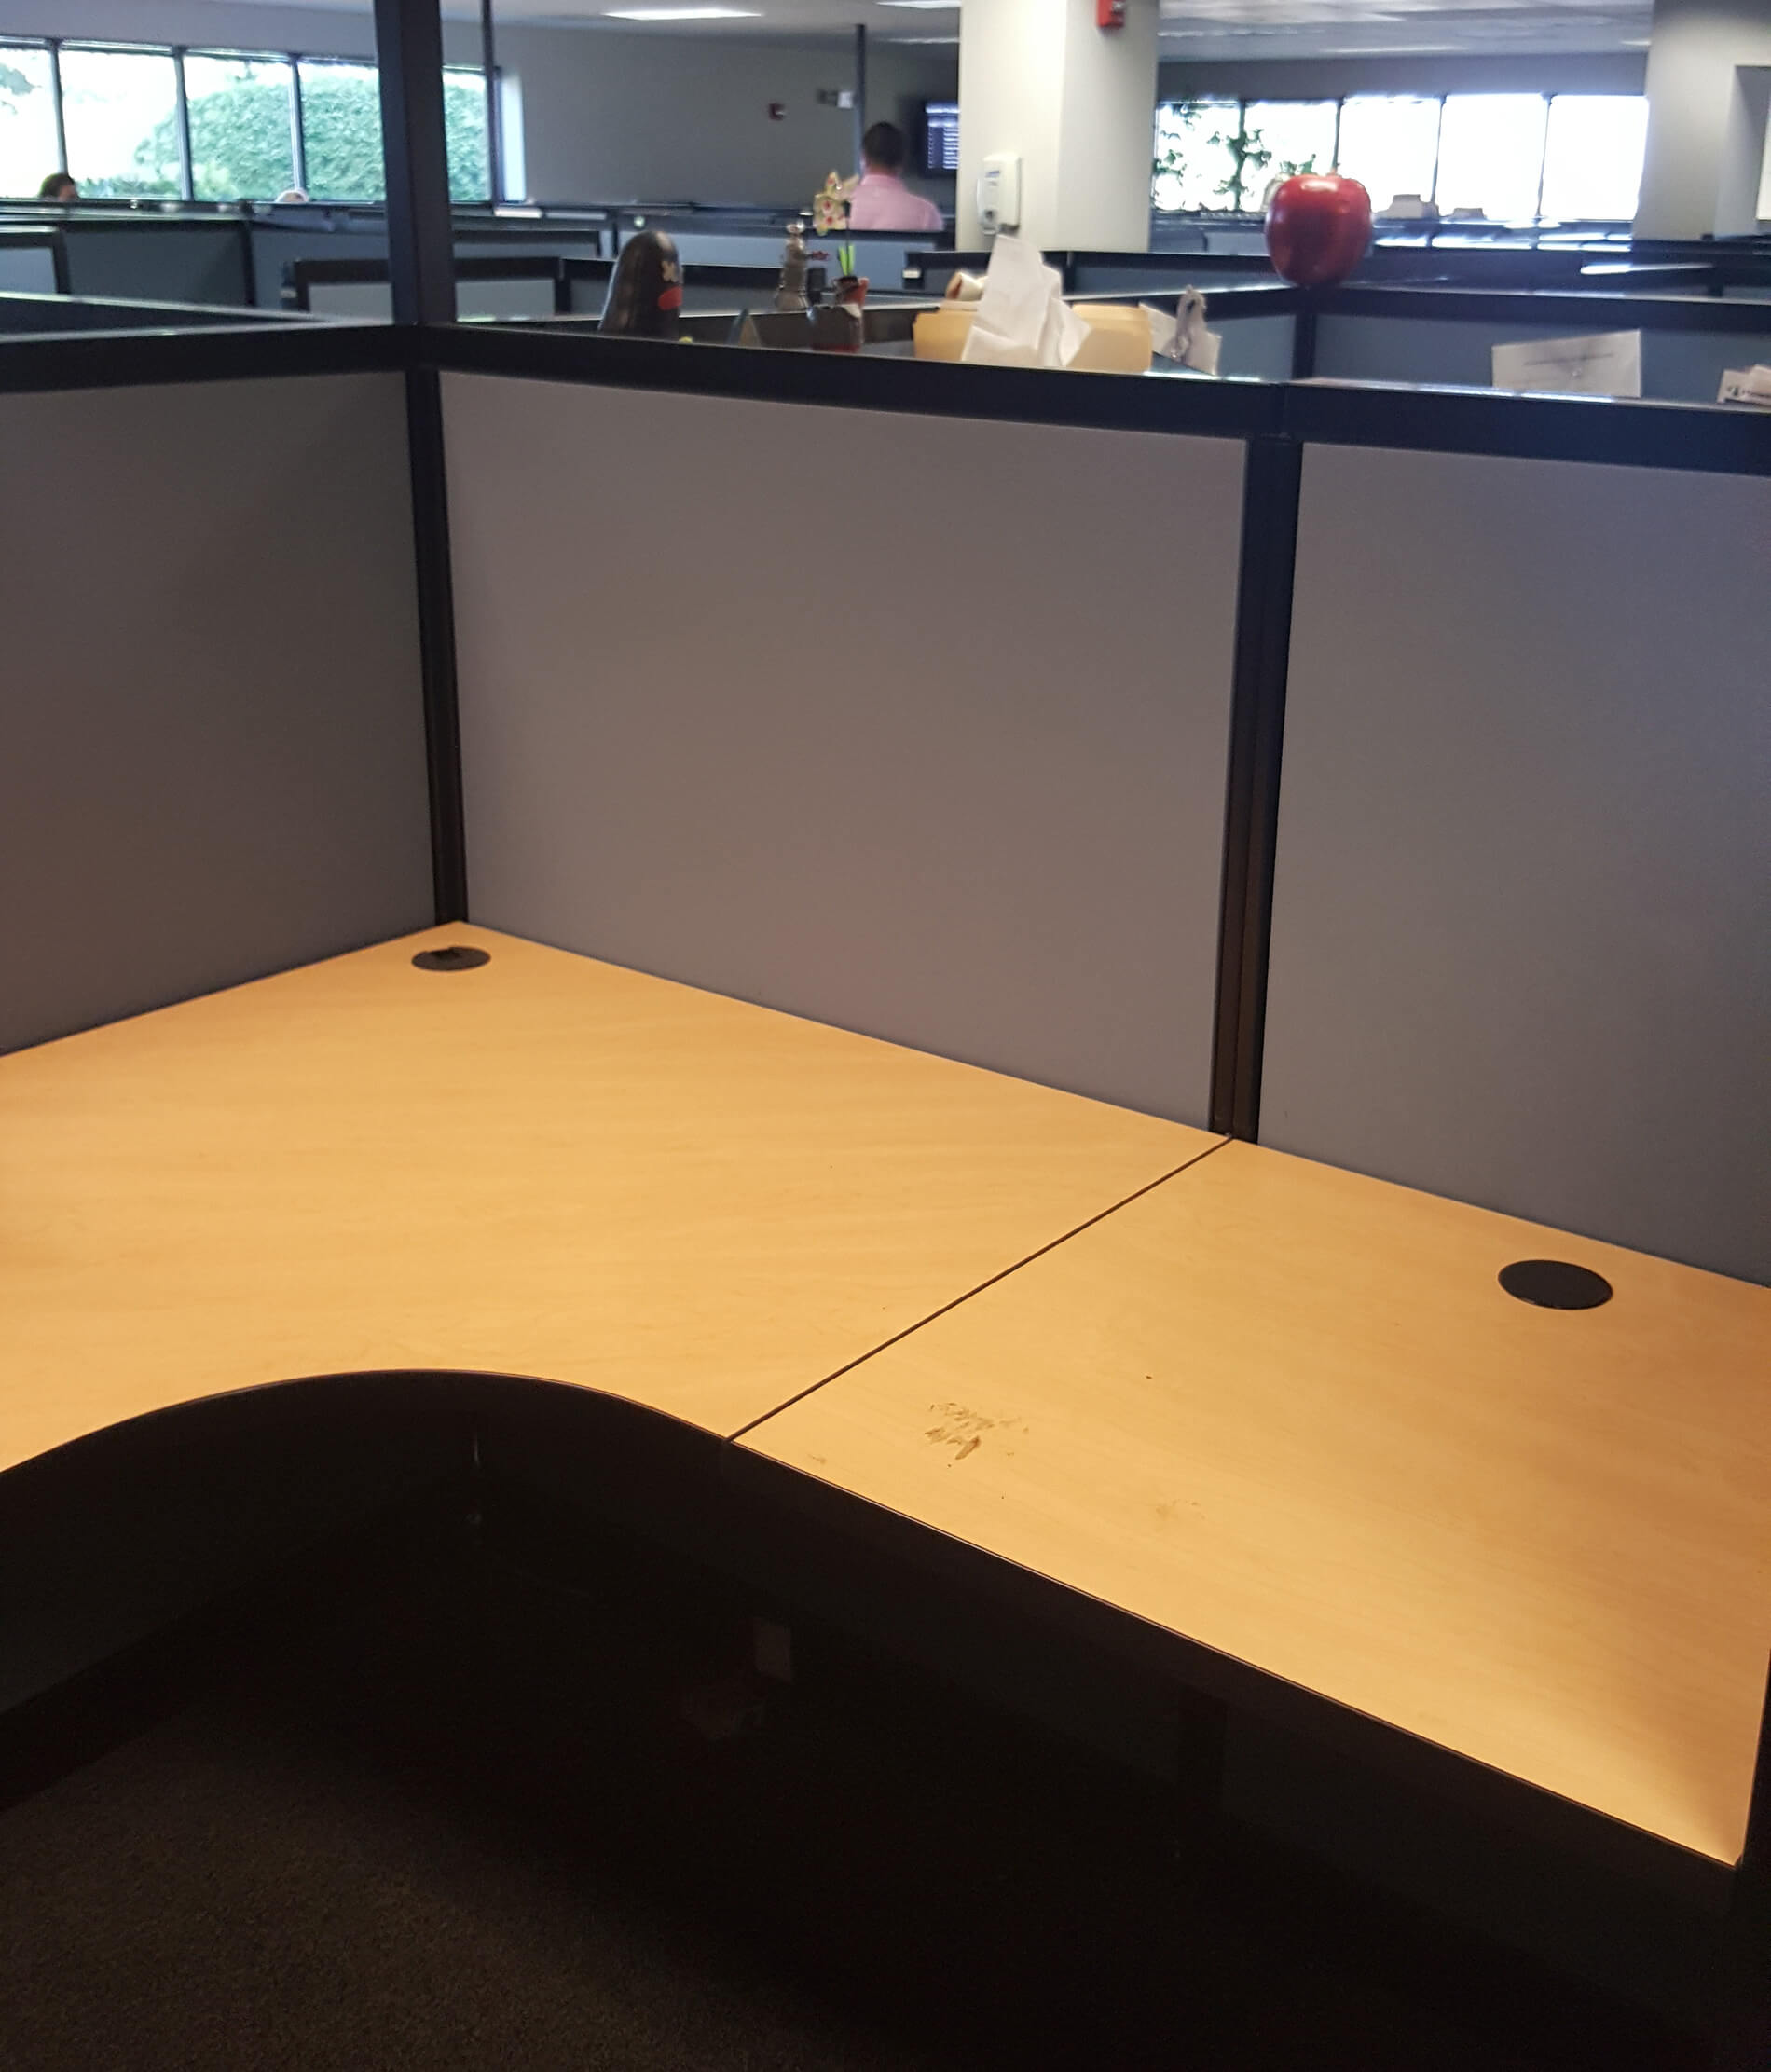 equilateral curved corner work surfaces make these stations easy to orient in a lefthand or righthand